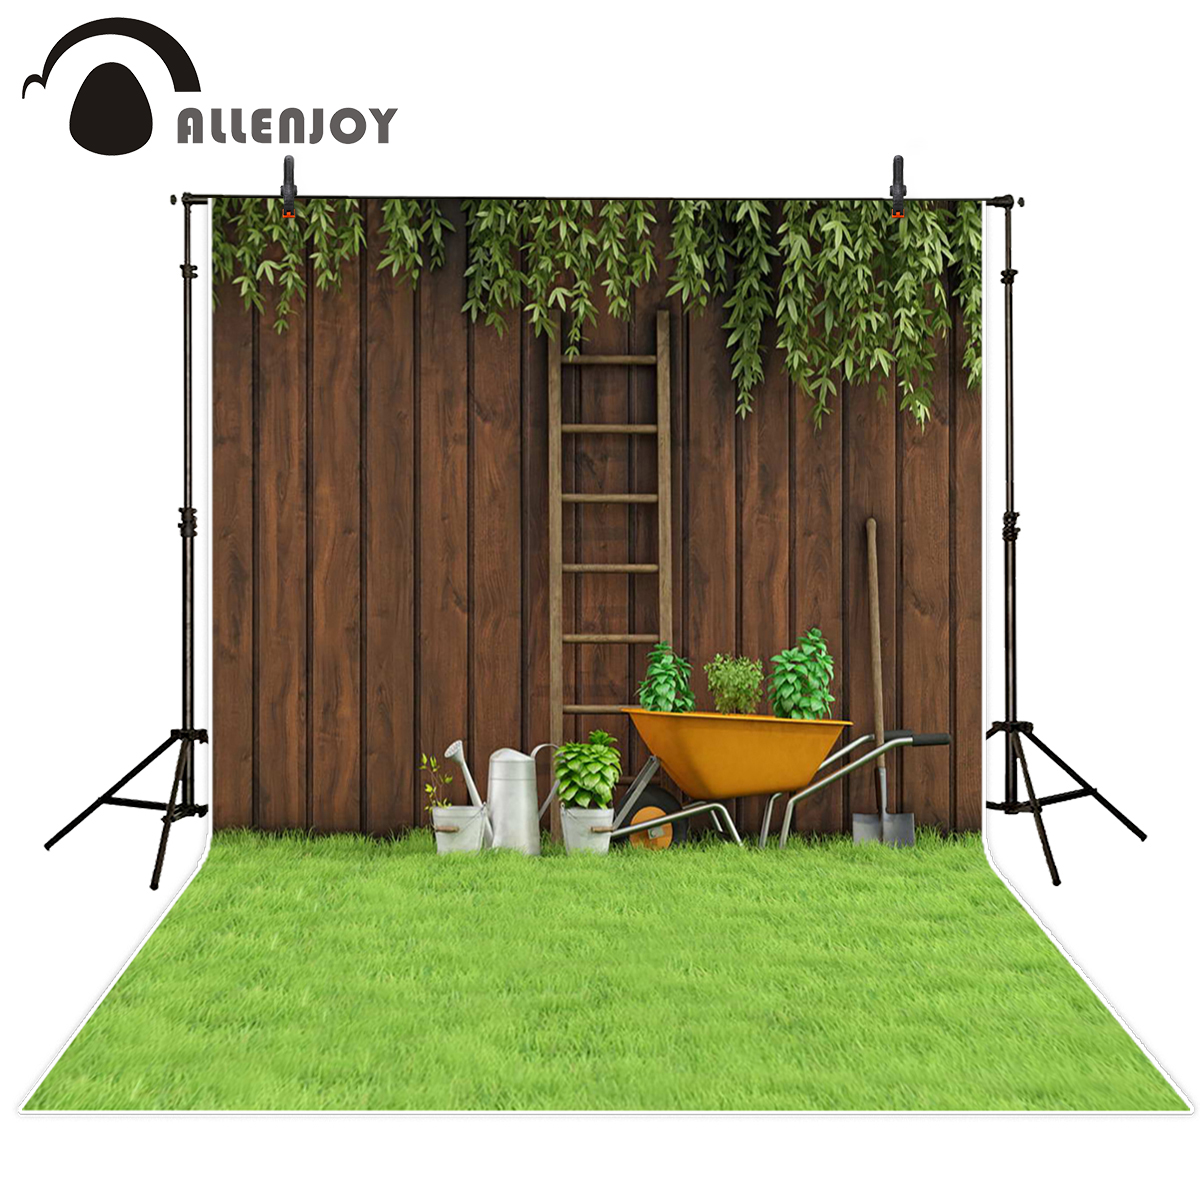 Allenjoy photo background backyard grass board tools backdrops for photo studio photographer headboard natural scenery backdrop m2 5 3 1pcs brass standoff 5mm spacer standard male female brass standoffs metric thread column high quality 1 piece sale